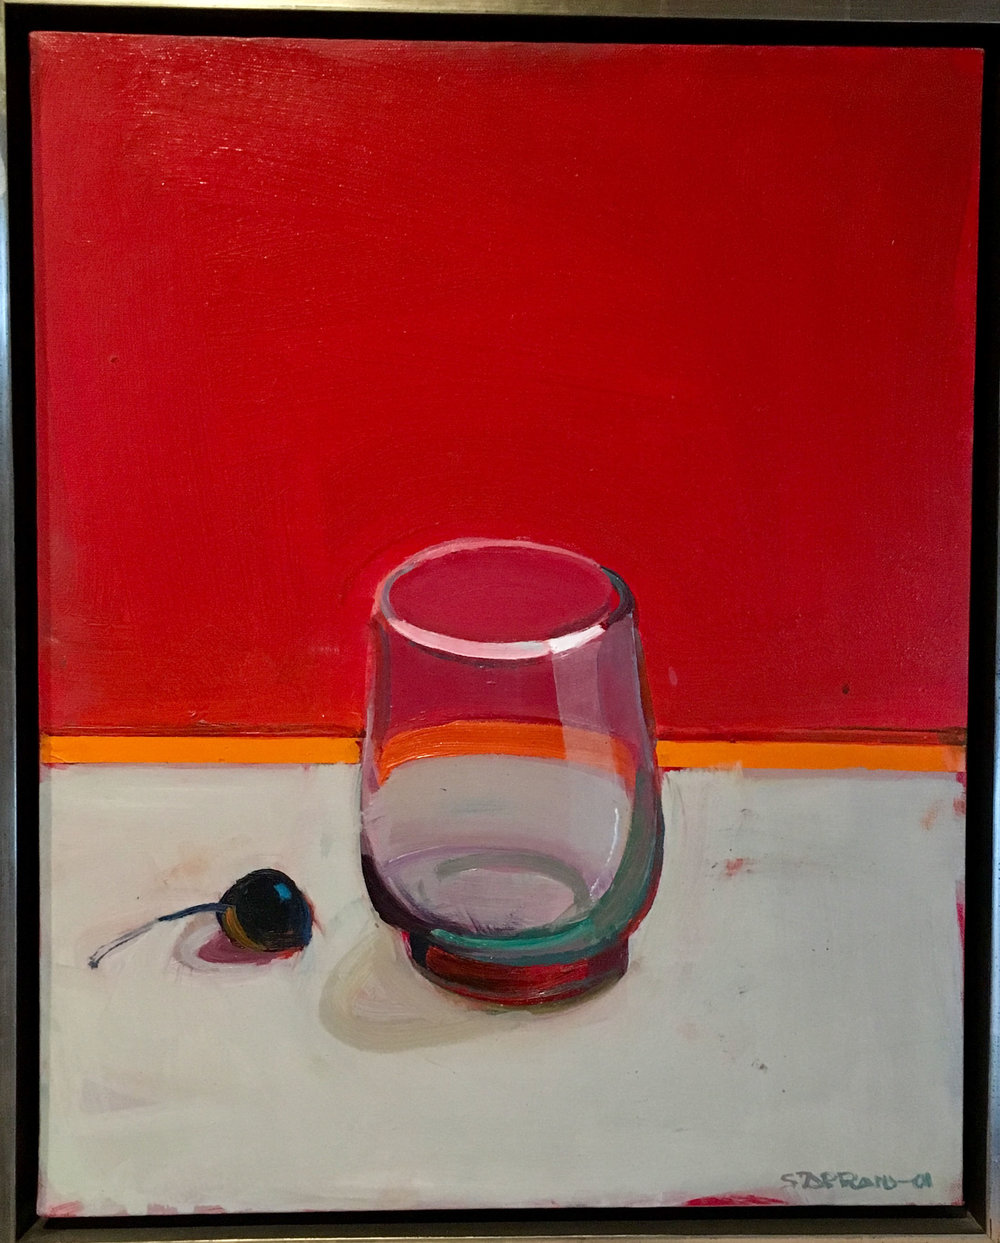 Raimonds Staprans 2001 glass/cherry - sold